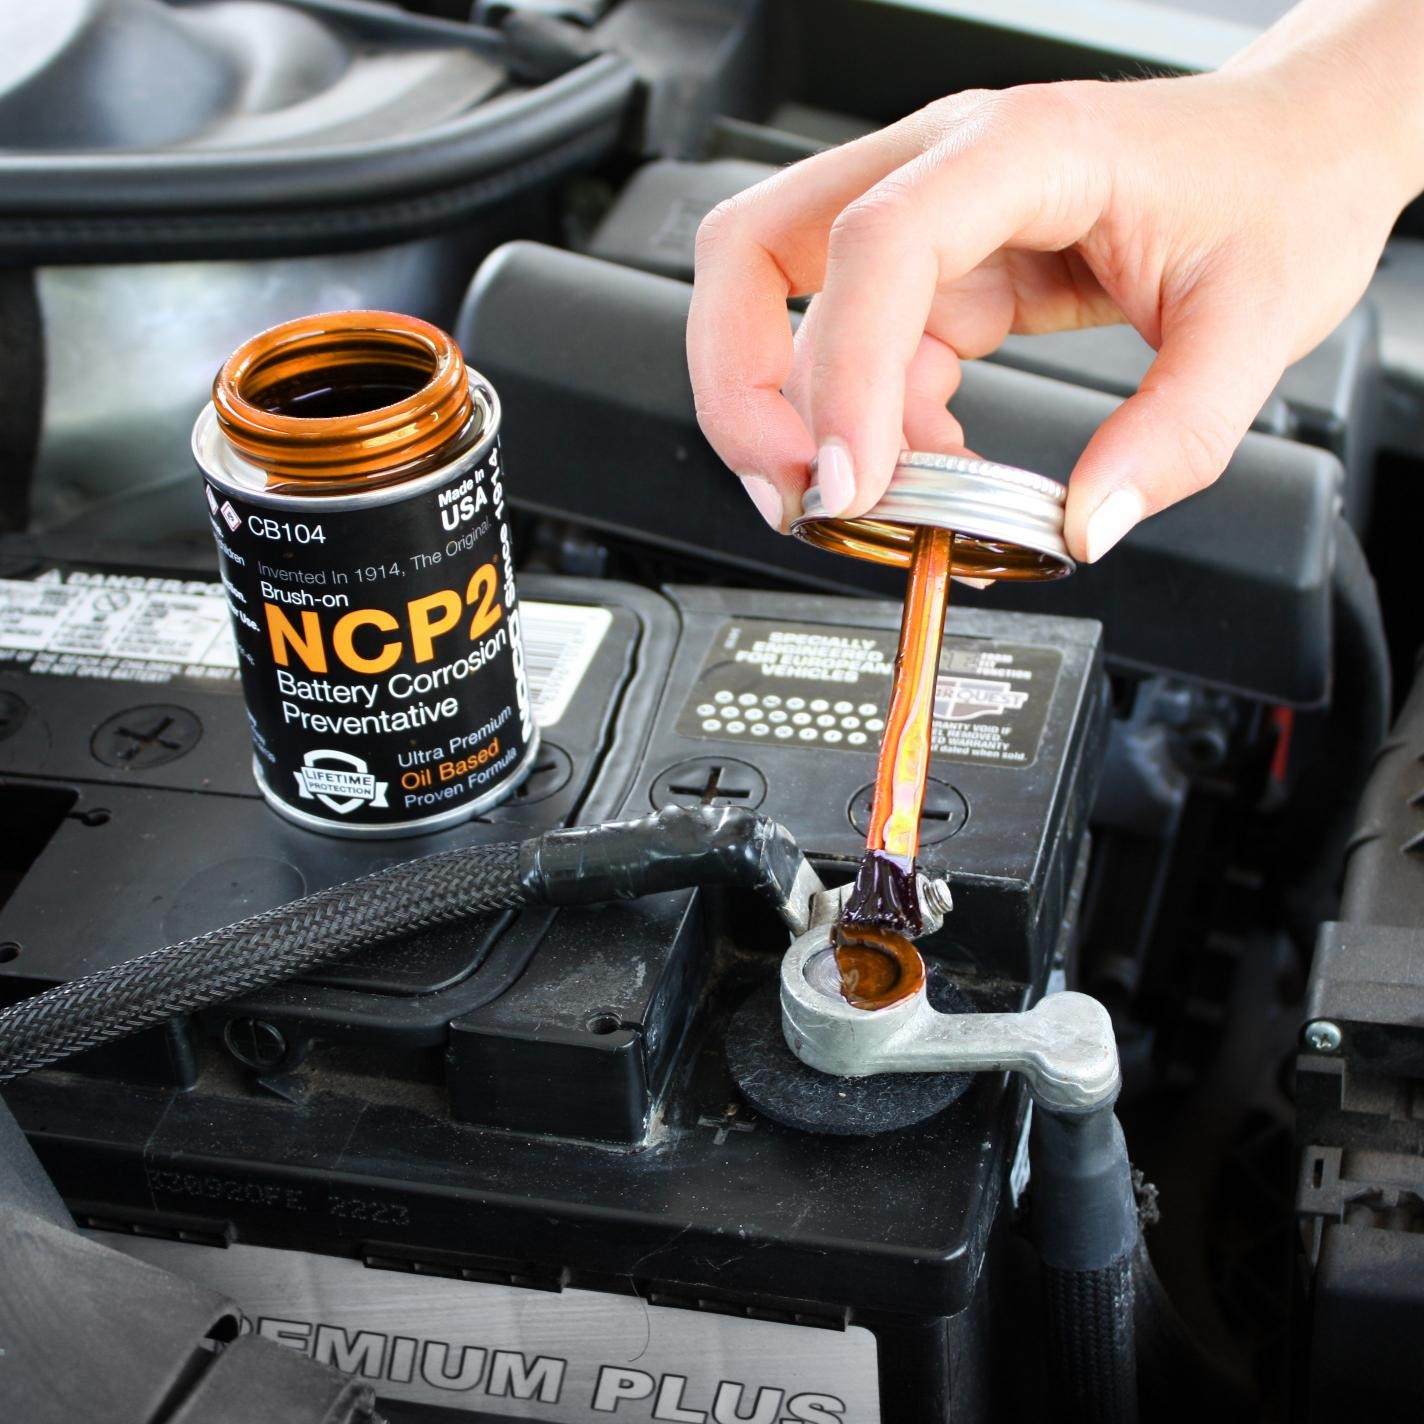 Ncp2 Battery Corrosion Preventative